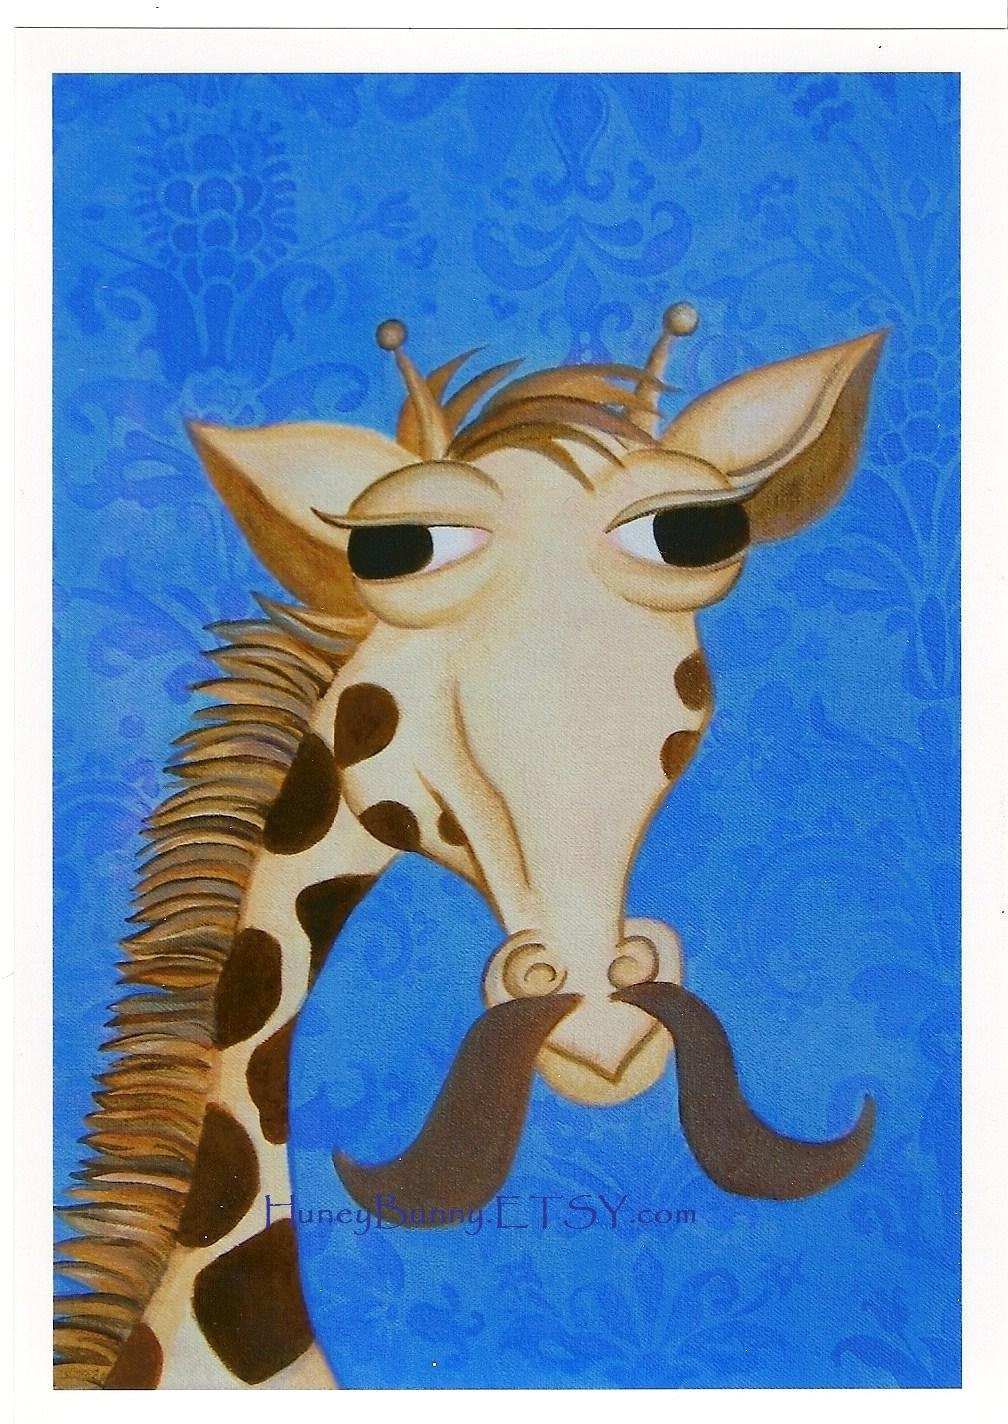 GIRAFFE ART. 8x10 Print.  Whimsical Giraffe with Mustache. Print from the painting: Grover Comb-over